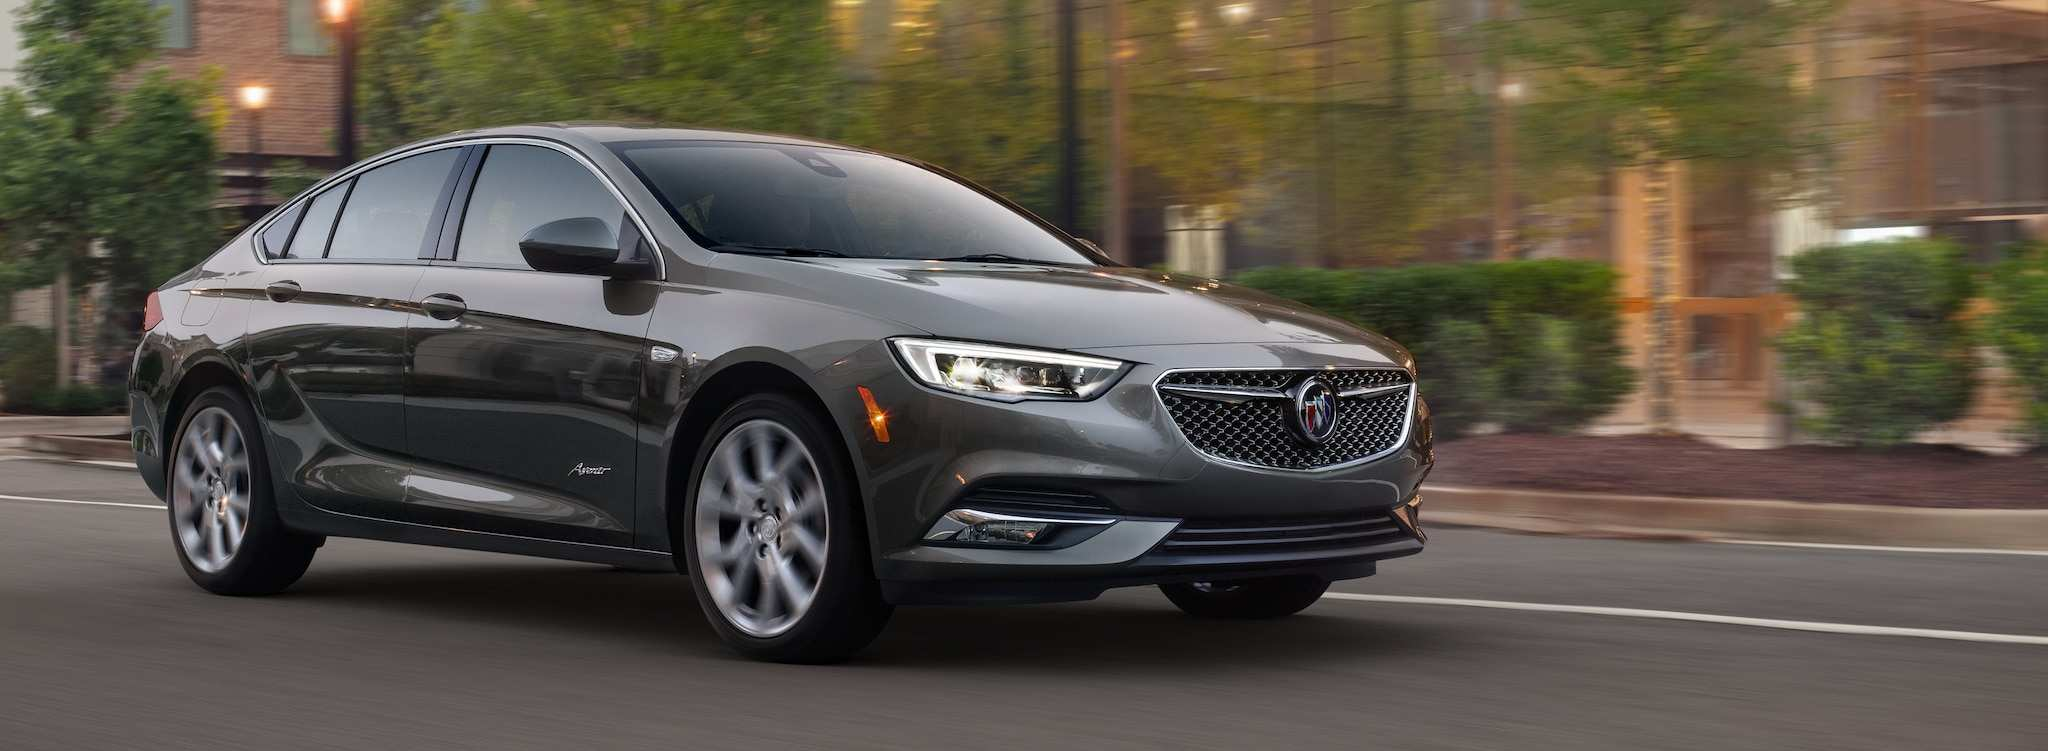 94 The 2019 Buick Lineup Research New